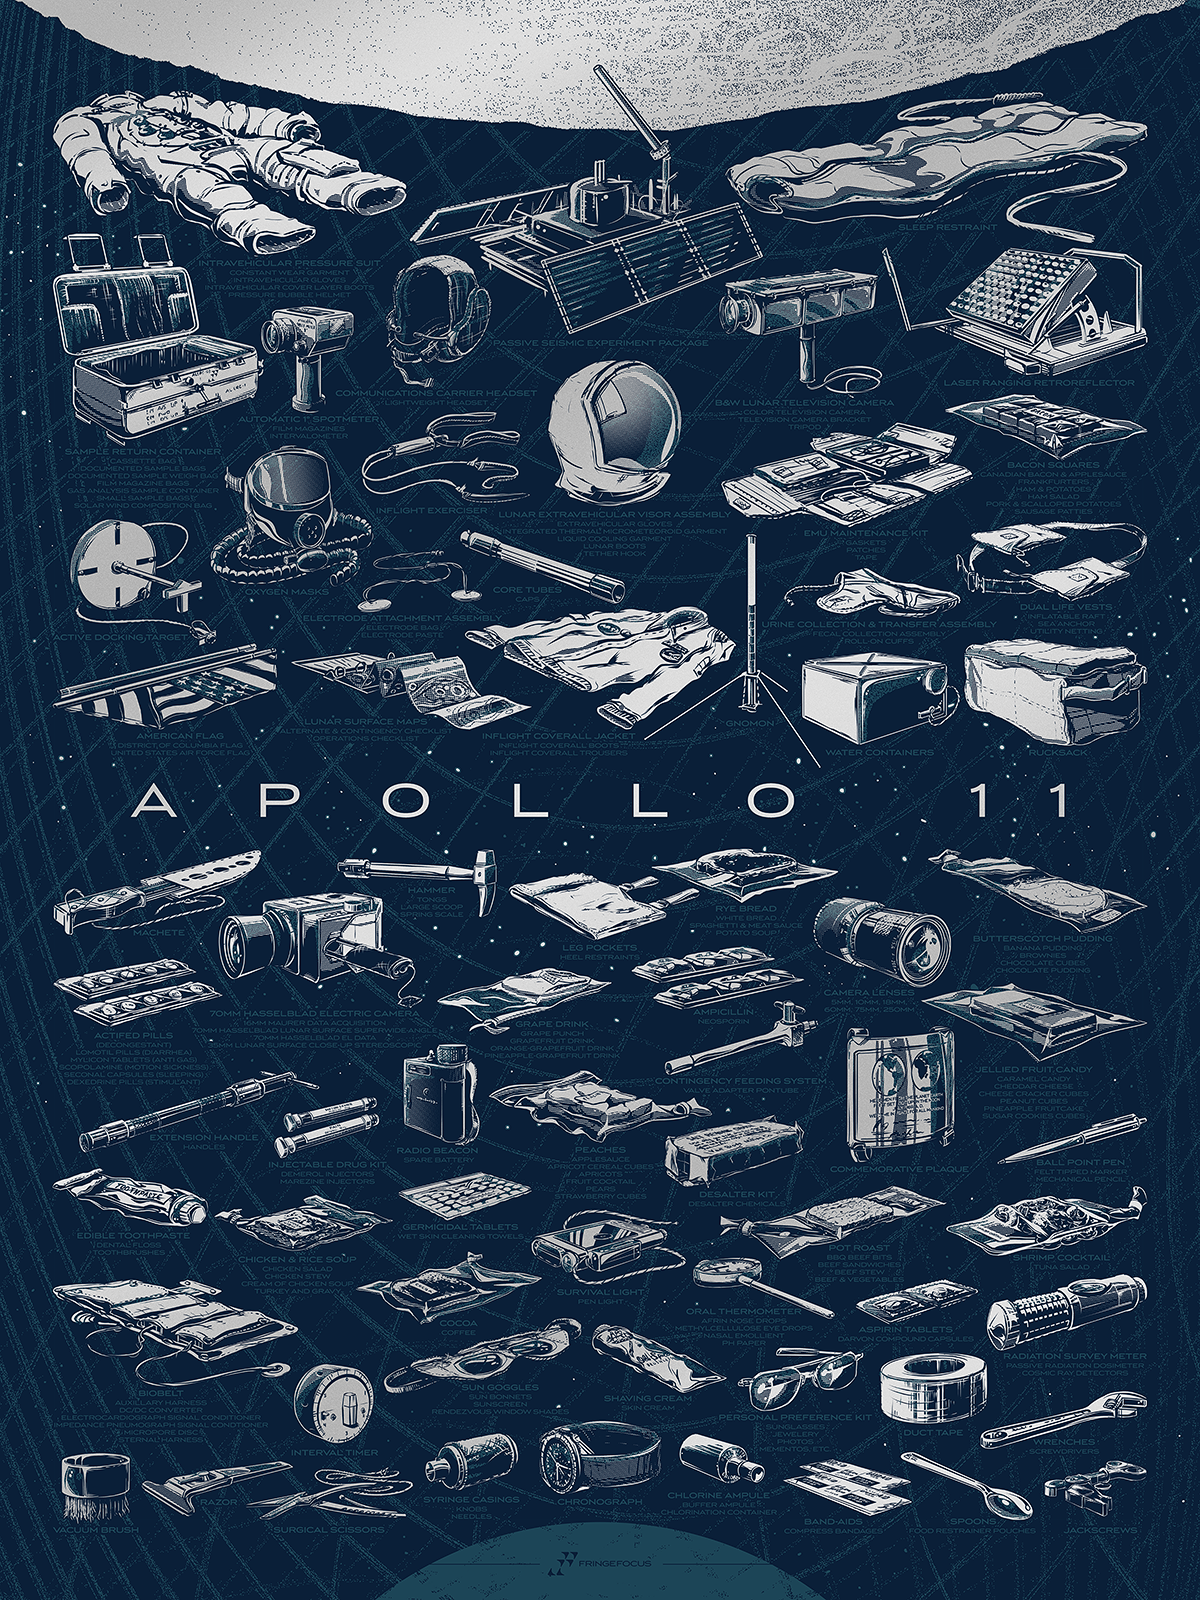 This illustrated poster by Rob Loukotka features a list of more than 200 items taken to the moon on Apollo 11, and 69 illustrations of those items.